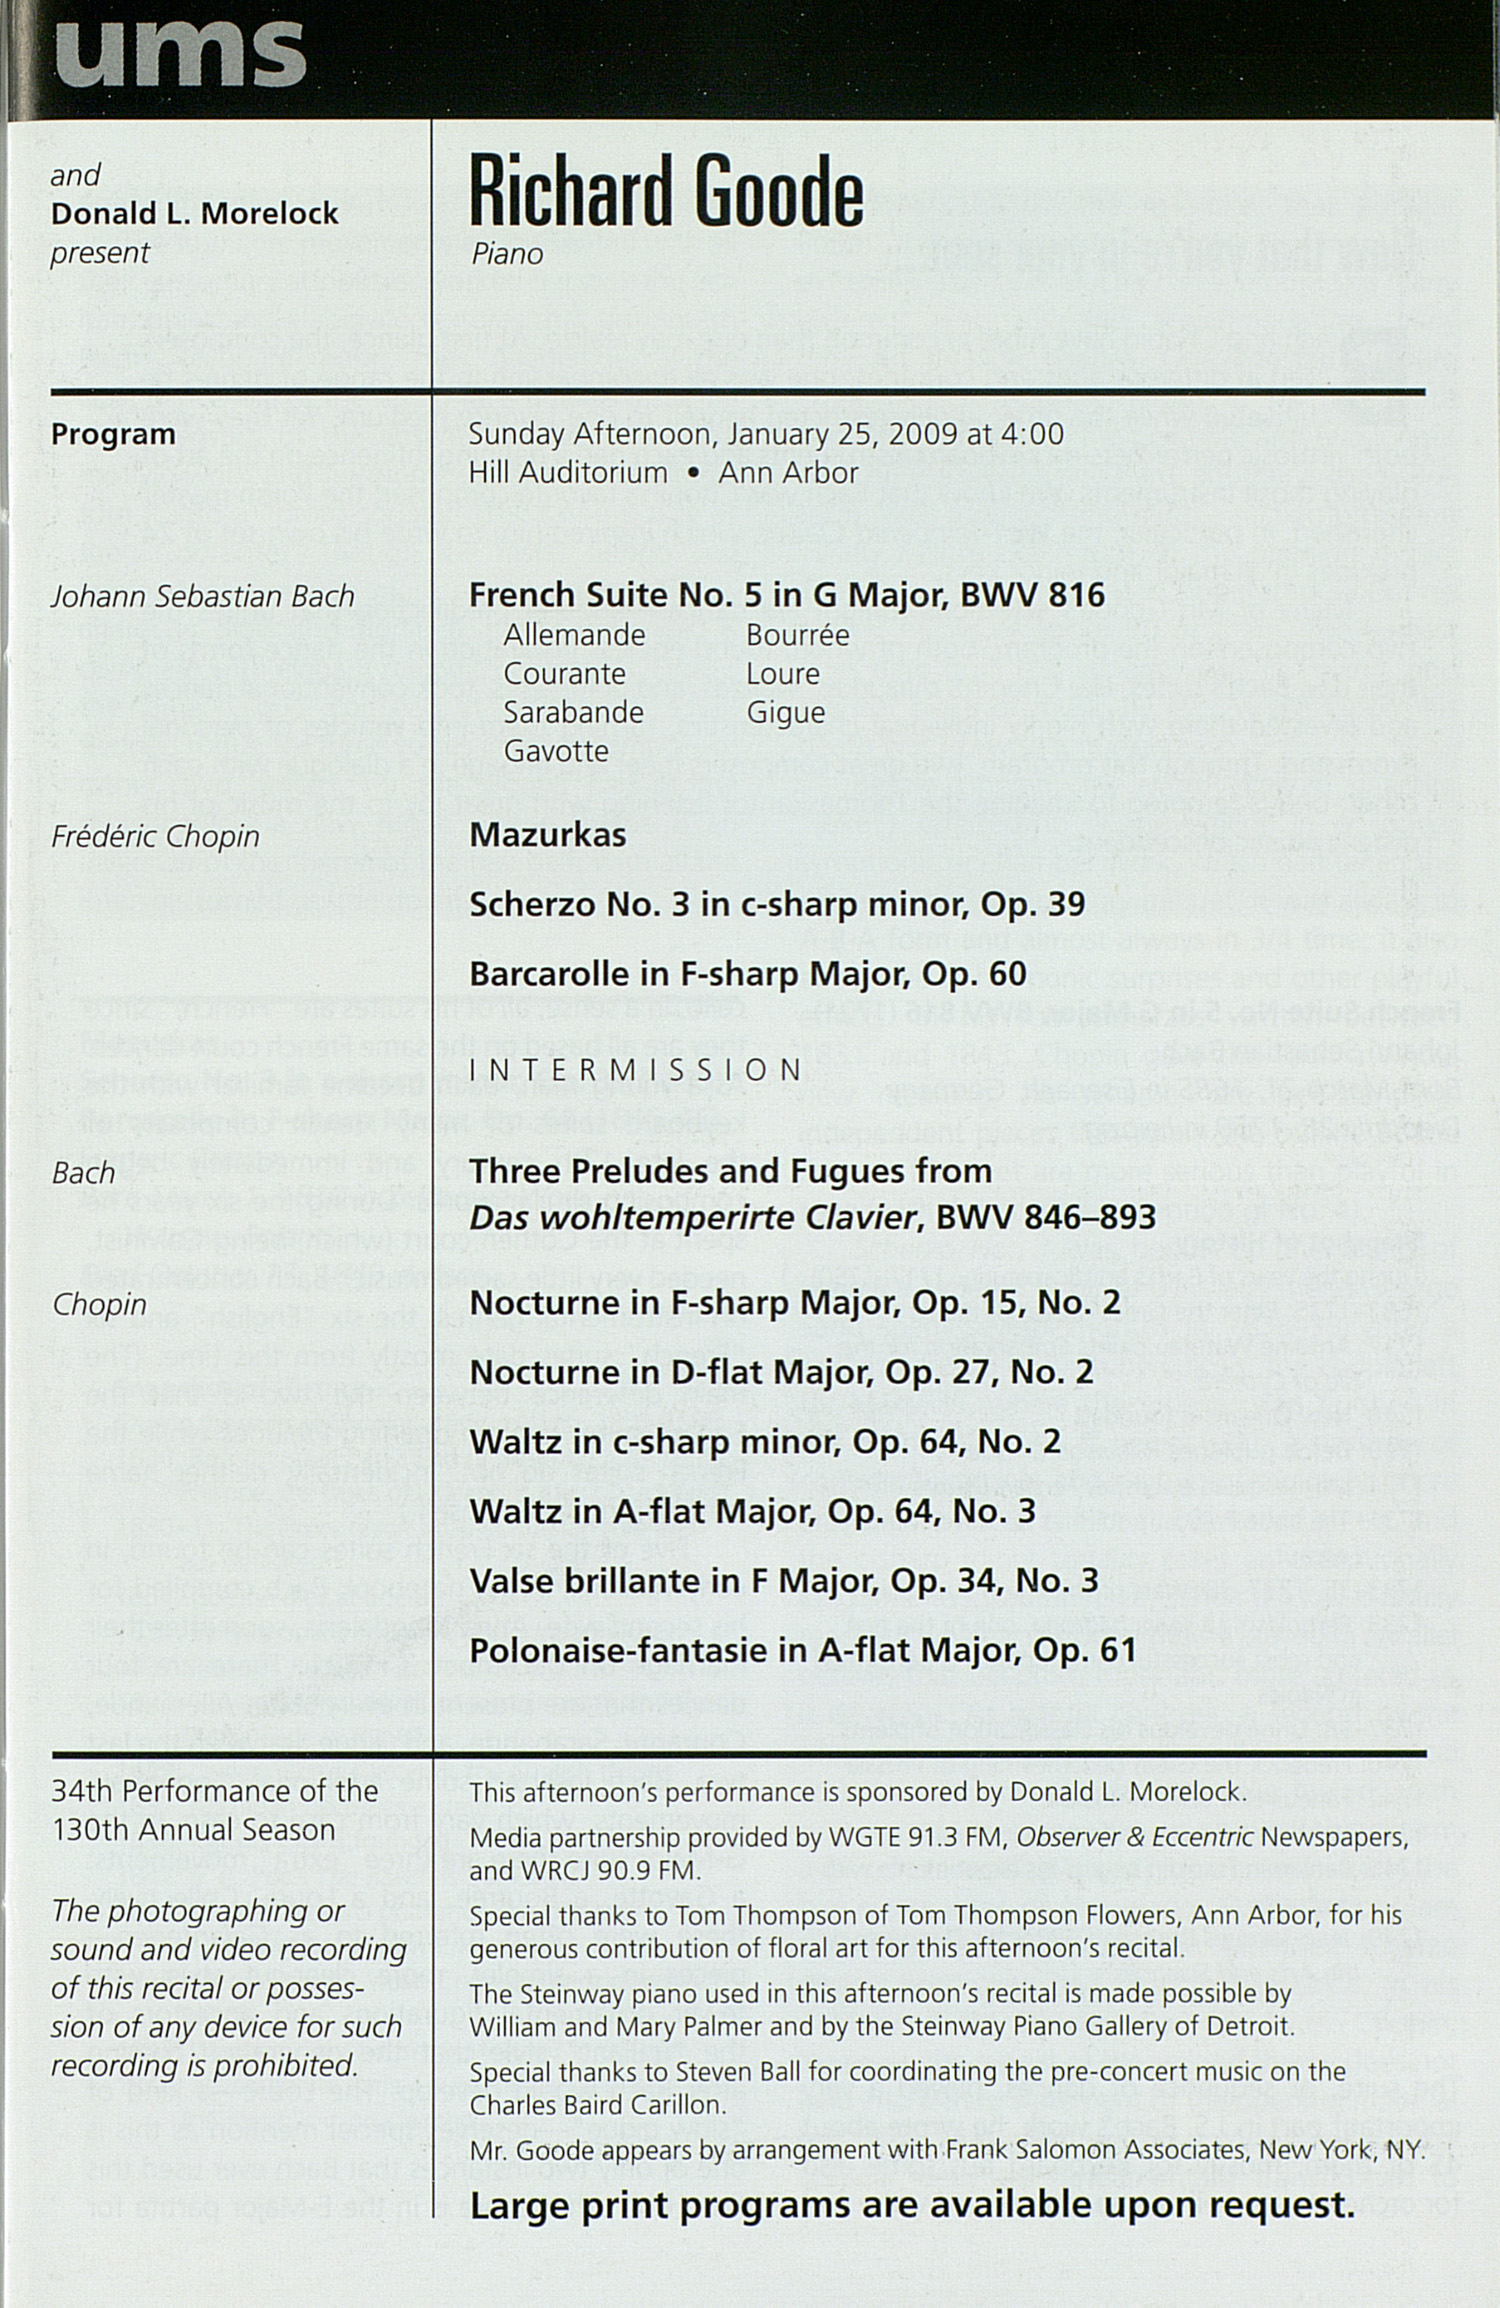 UMS Concert Program, Friday Jan. 23 To Feb. 07: University Musical Society: Winter 2009 - Friday Jan. 23 To Feb. 07 --  image